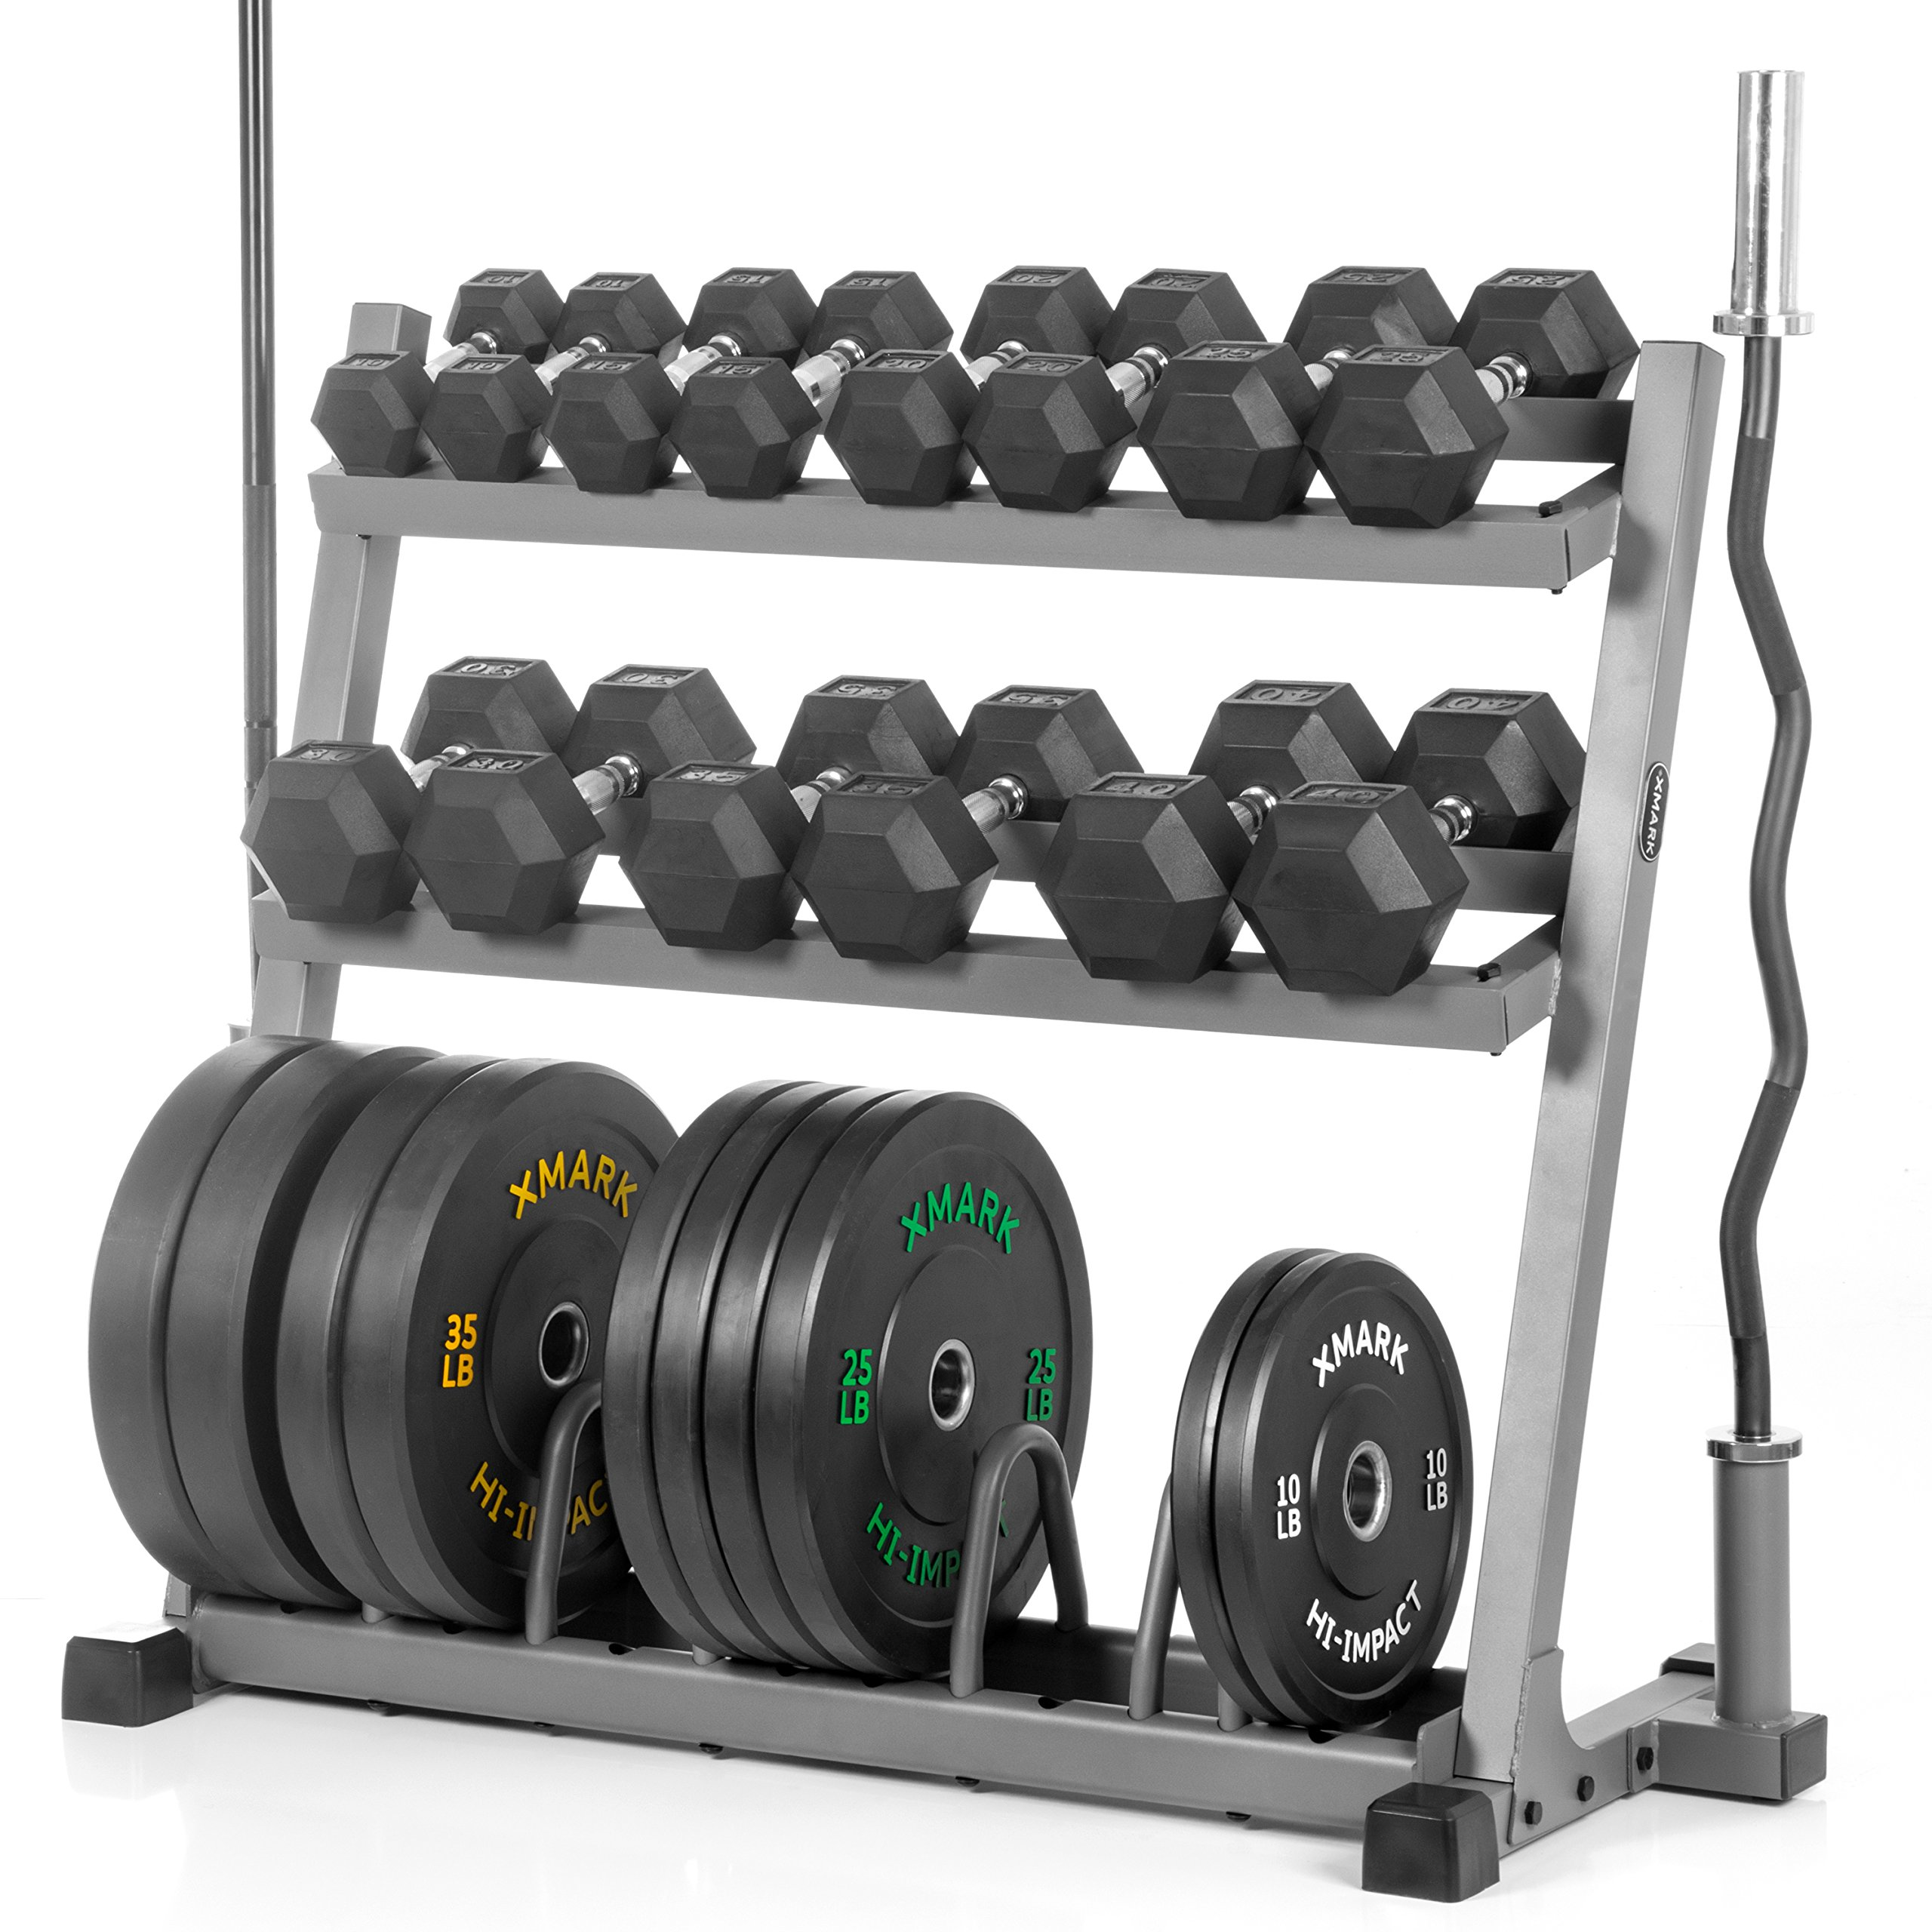 XMark POWERHOUSE Package Fully Loaded Dumbbell and Plate Weight Rack with Bar Storage, Voodoo 7' Olympic Bar, Olympic EZ Curl Bar, 350 lb. Set of Hex Dumbbells and 280 lbs. of Olympic Bumpers